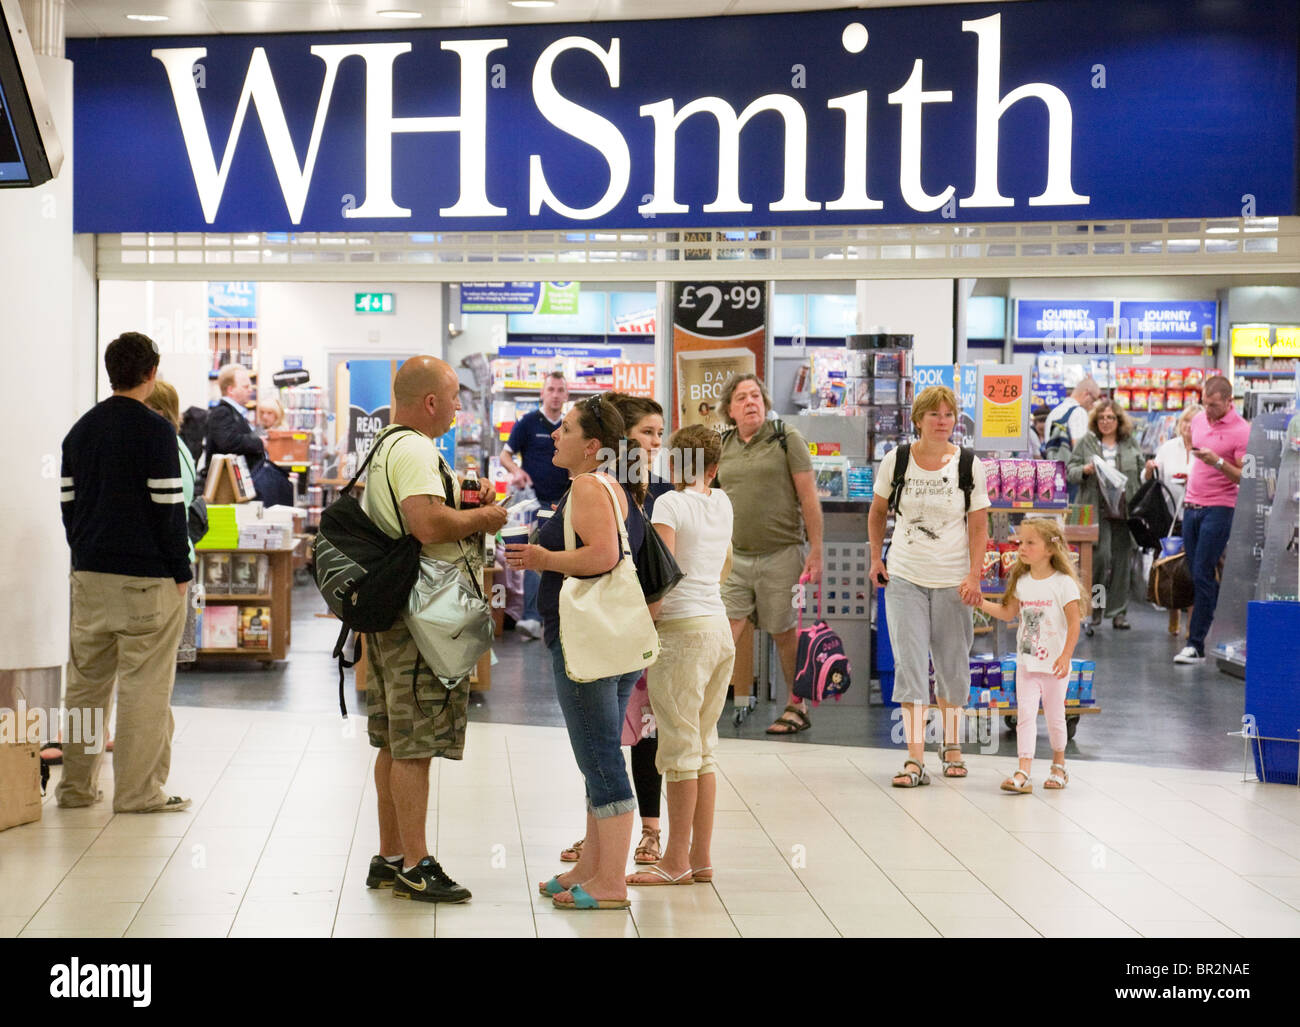 WH Smith store, Departures, South terminal, Gatwick airport, UK - Stock Image